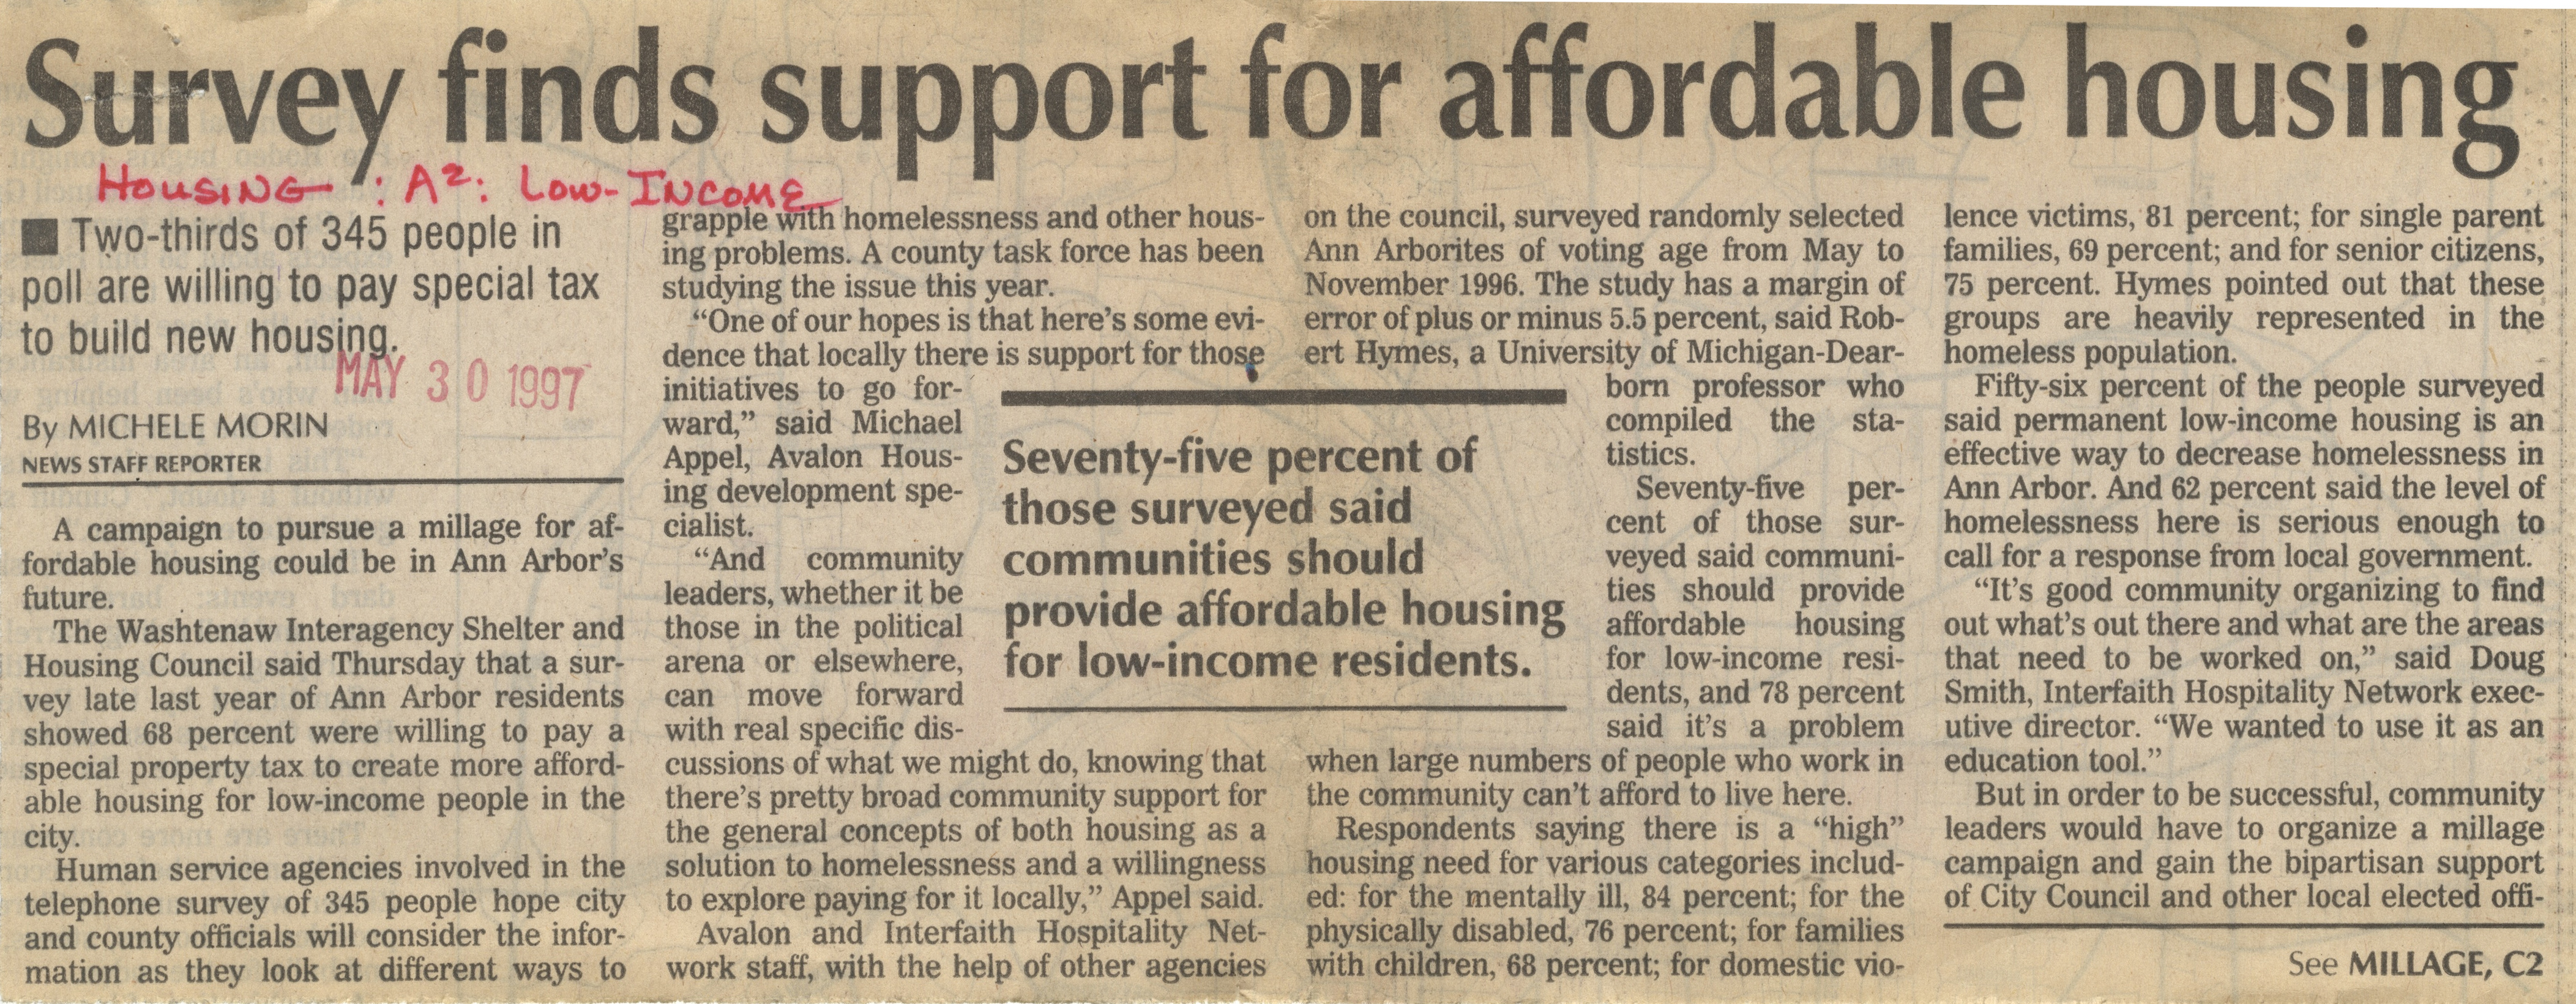 Survey Finds Support for Affordable Housing image